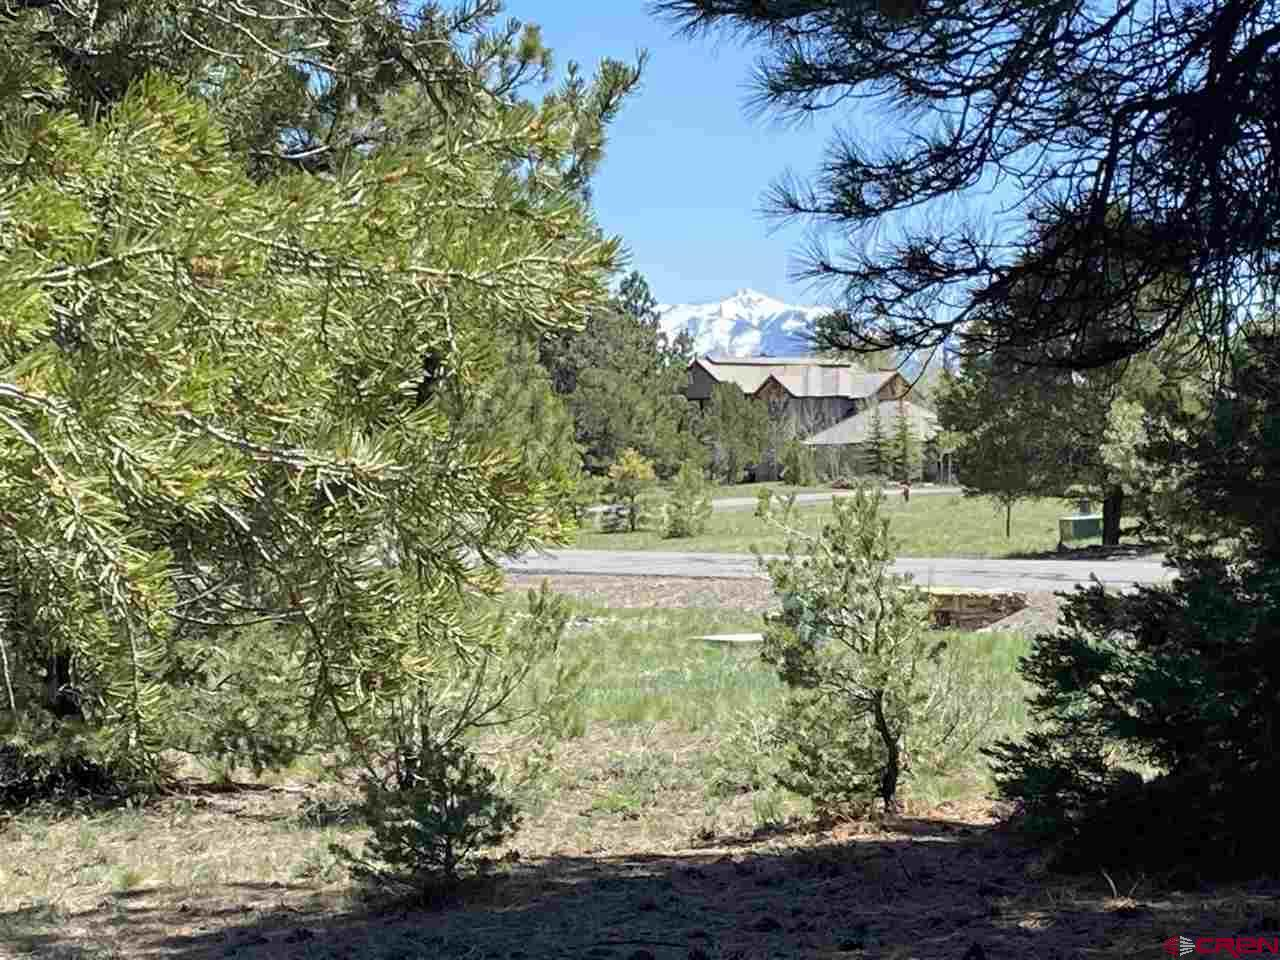 """Golf Course lot on Marmot!  This lot is located on the 12th hole with dramatic views of the Cimmaron Range and is just over an Acre.  Mature trees and level building location for your dream home.  The right location will offer views of the San Juan's.  In the winter Hole 12 is the go to """"sledding hill"""" for the kids, grandkids and adults.   Divide Ranch & Club Golf Course is the perfect spot to get your game on.  Even for those that are not avid golfers there is different scenery from every hole on the course that you do not want to miss out on. In the winter enjoy snowshoeing, cross country skiing and sledding throughout the community.  The clubhouse offers opportunities to meet with your neighbors for a cocktail and a bite to eat.   It is also a gorgeous backdrop for a special events including weddings, birthdays, or other small private parties.  The community is centrally located in Southwestern Colorado within close proximity to every outdoor activity you can imagine.  Enjoy skiing or snowboarding in world renowned Telluride CO in the winter and take advantage of the many festivals offered throughout the summer including, Film, Wine, Yoga, Blue Grass ,Blue's & Brew's and many more .  Ouray, known as the Little Switzerland of the US,  is within 15 min where you can soak in the Hot Springs while looking up at the mountains and hike or drive to waterfalls. Fly fishing, boating, kayaking, paddle boarding, hiking, mountain biking and off-roading is literally minutes away from your front door.  When you are done playing in the mountains stop by one of the local breweries or dine in one of the restaurants.  Divide Ranch & Club is a hidden gem nestled in the San Juan's and is the perfect spot for a forever home or a second home.."""